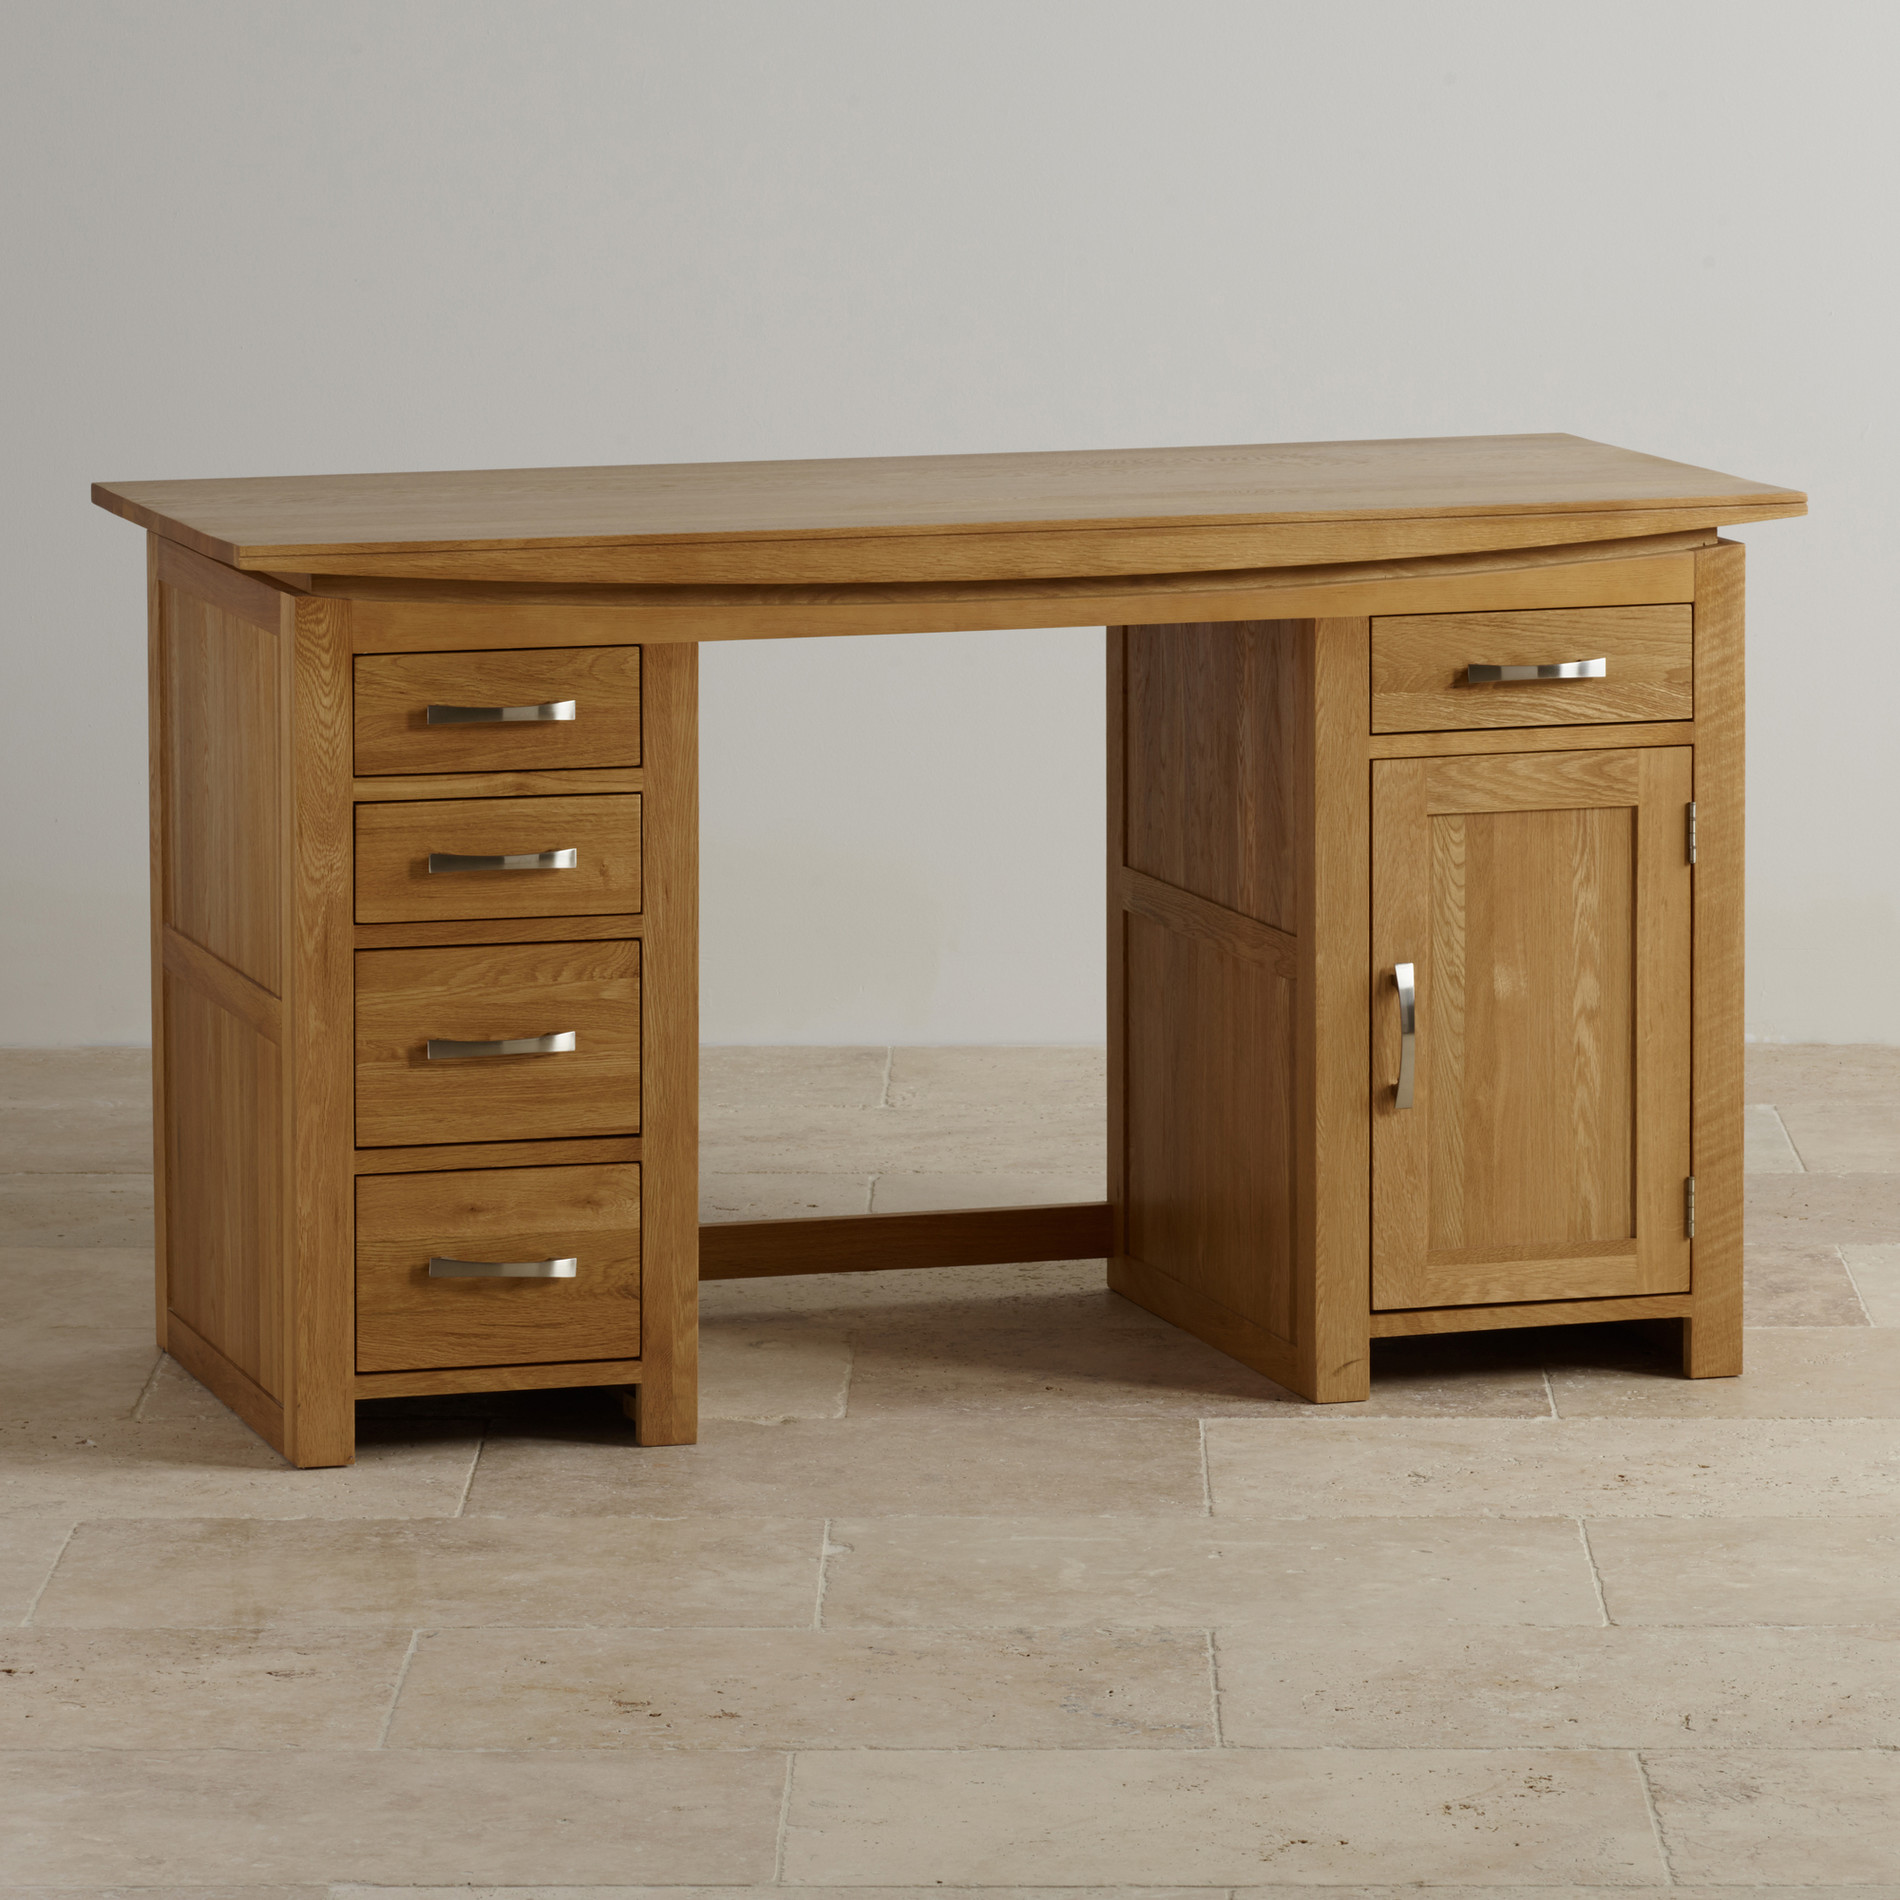 Tokyo Natural Solid Oak Computer Desk by Oak Furniture Land : tokyo natural solid oak computer desk 55d712e83d5a1 from www.oakfurnitureland.co.uk size 1900 x 1900 jpeg 543kB